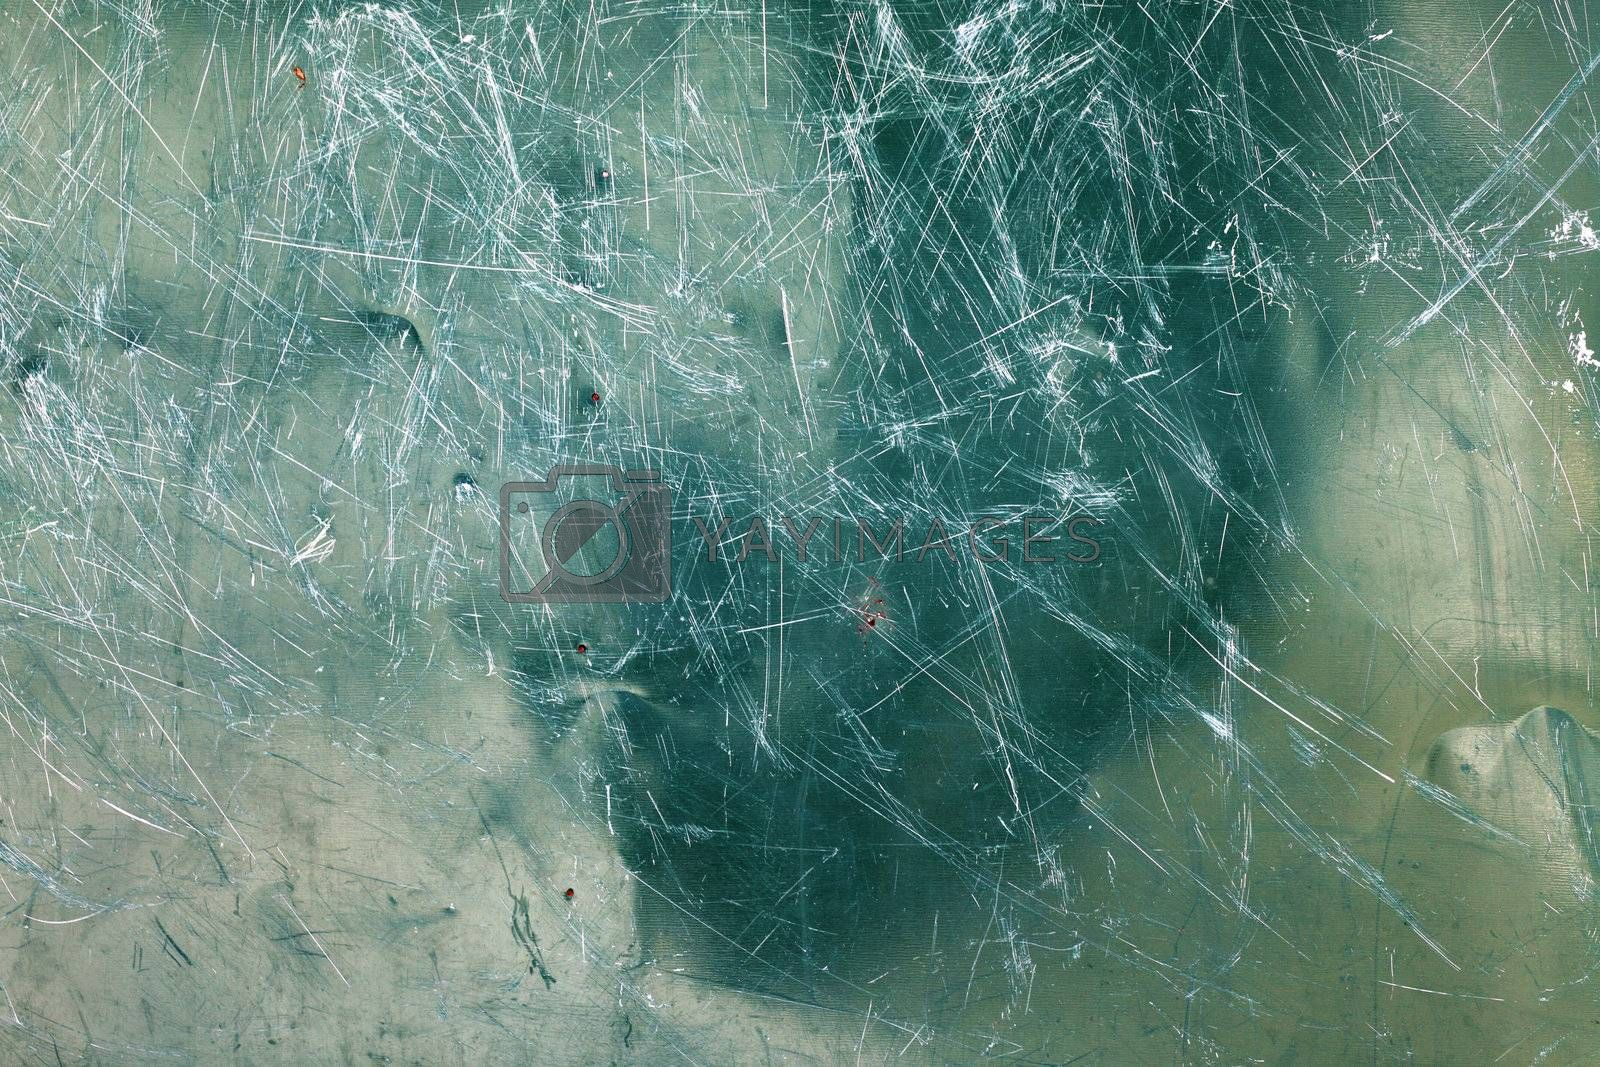 Image of green glass texture close-up with scratches over surface